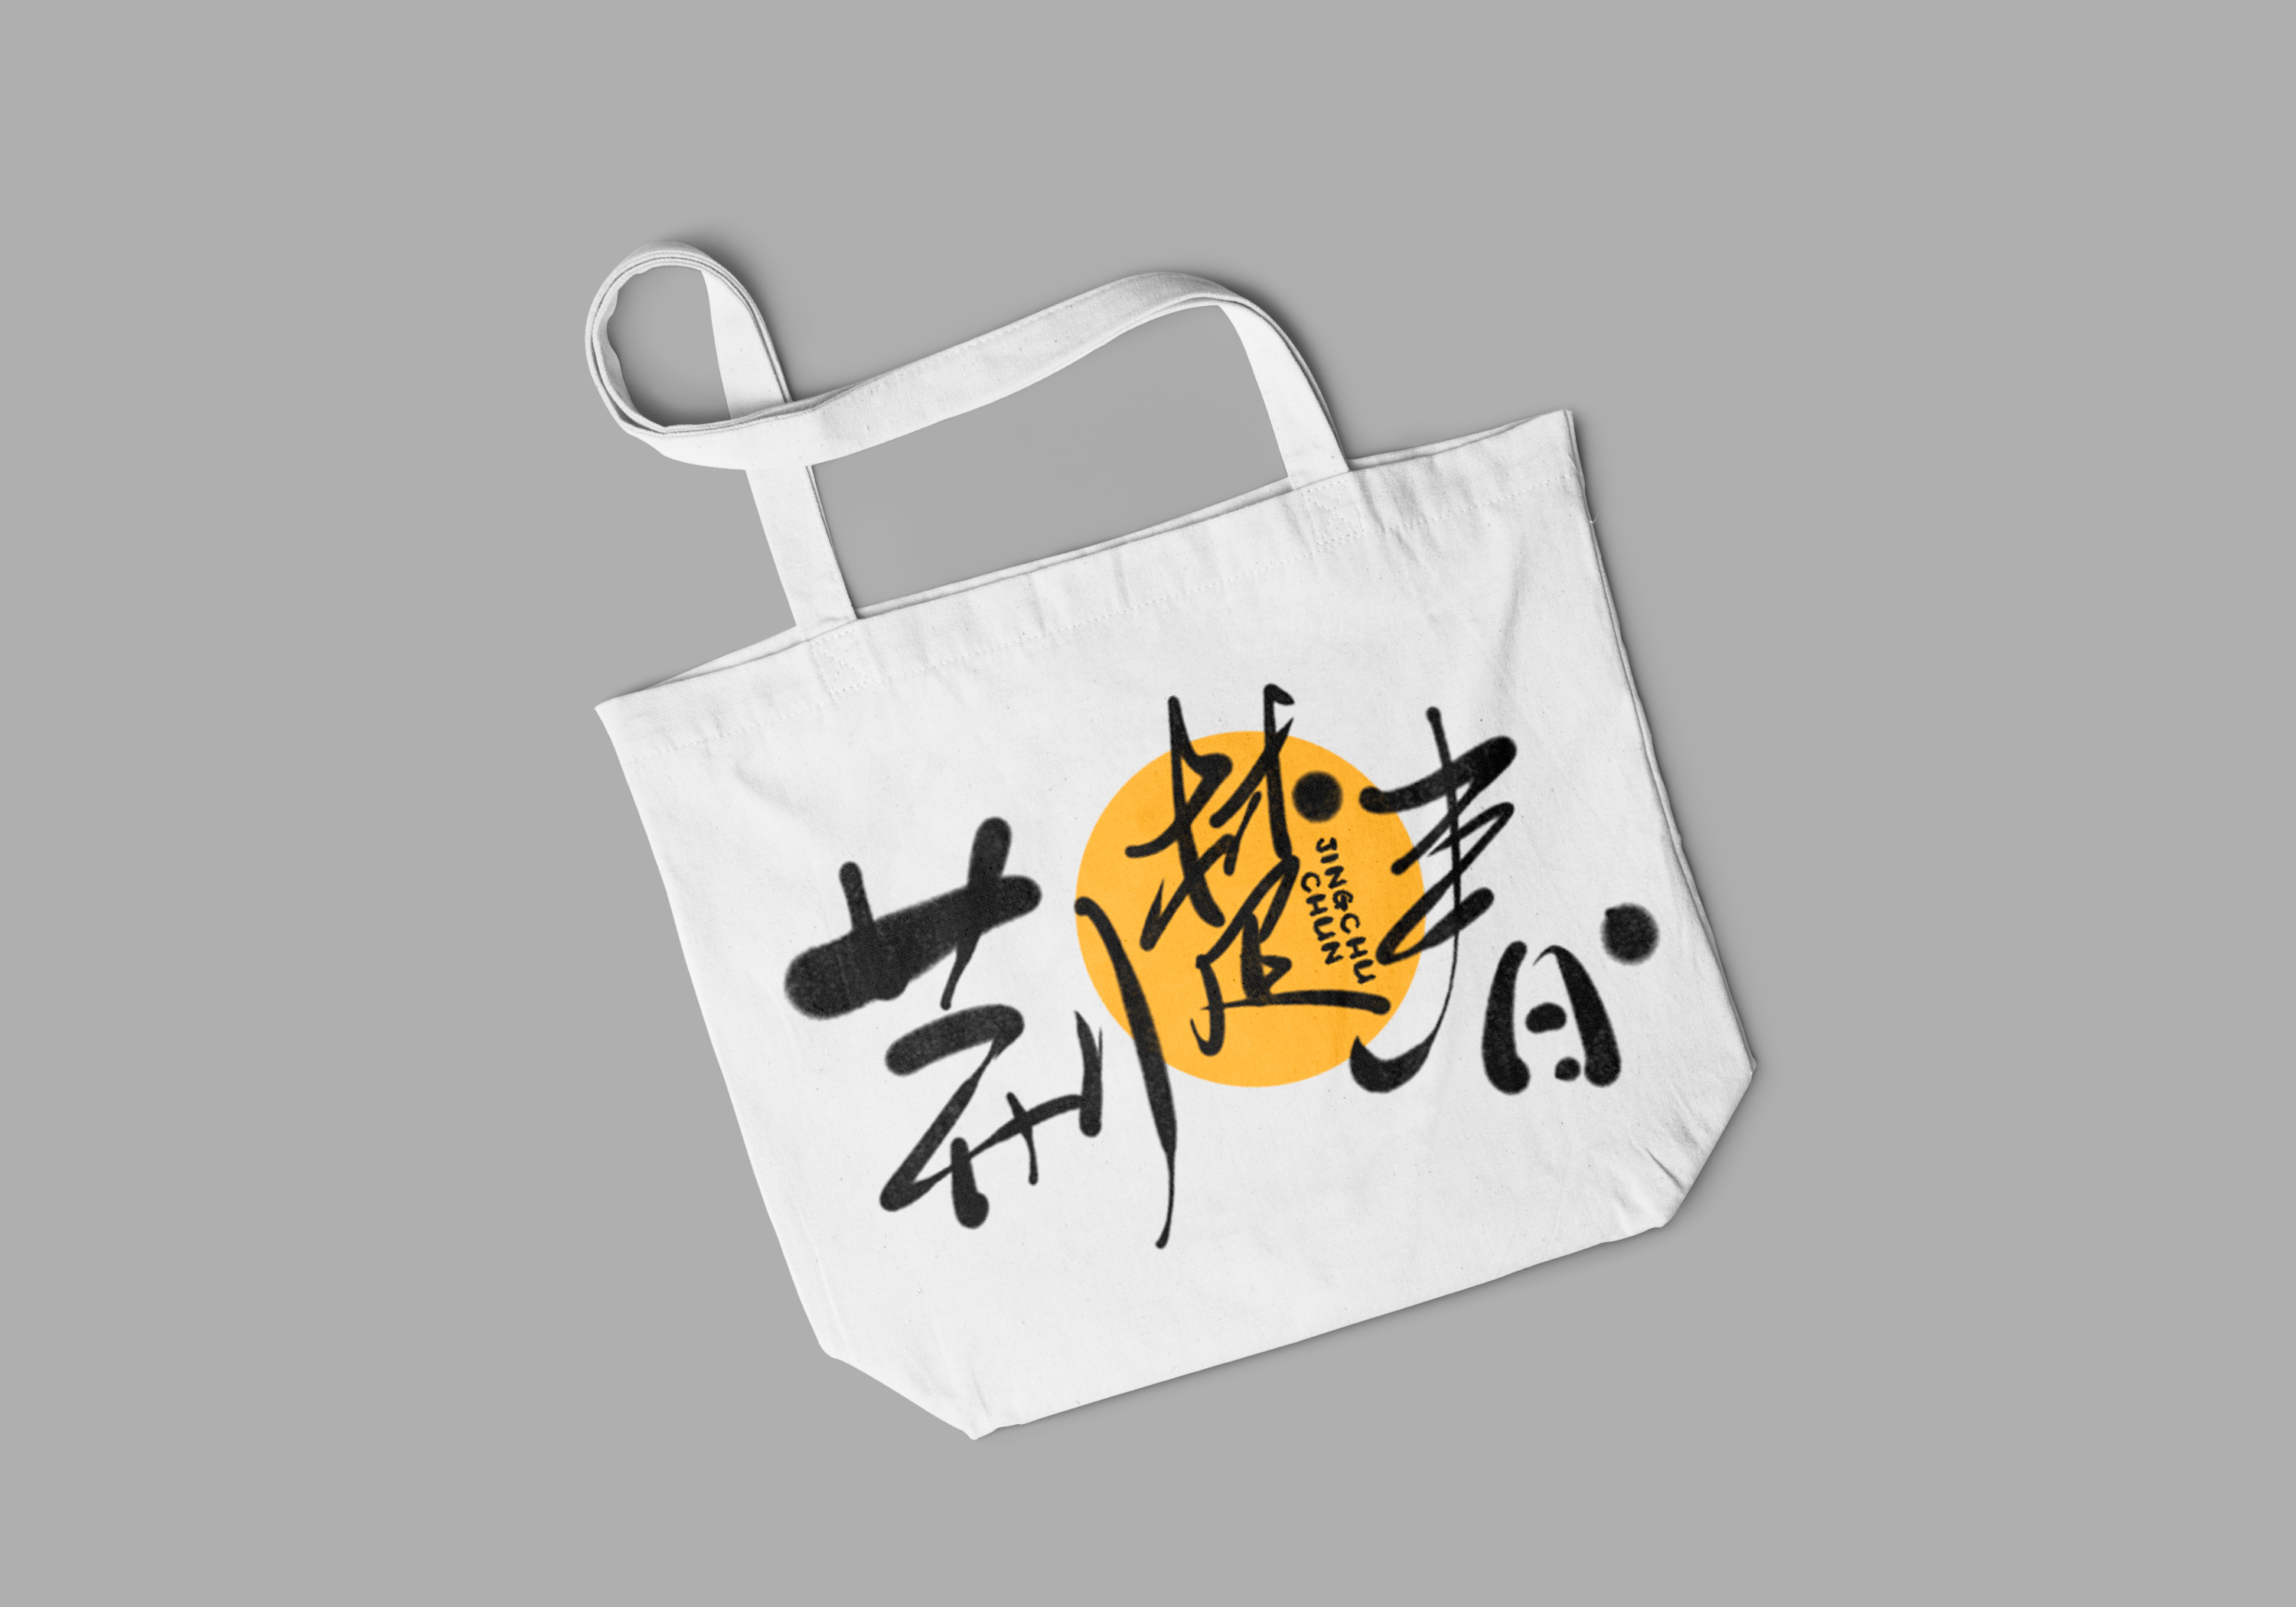 13P Collection of the latest Chinese font design schemes in 2021 #.276